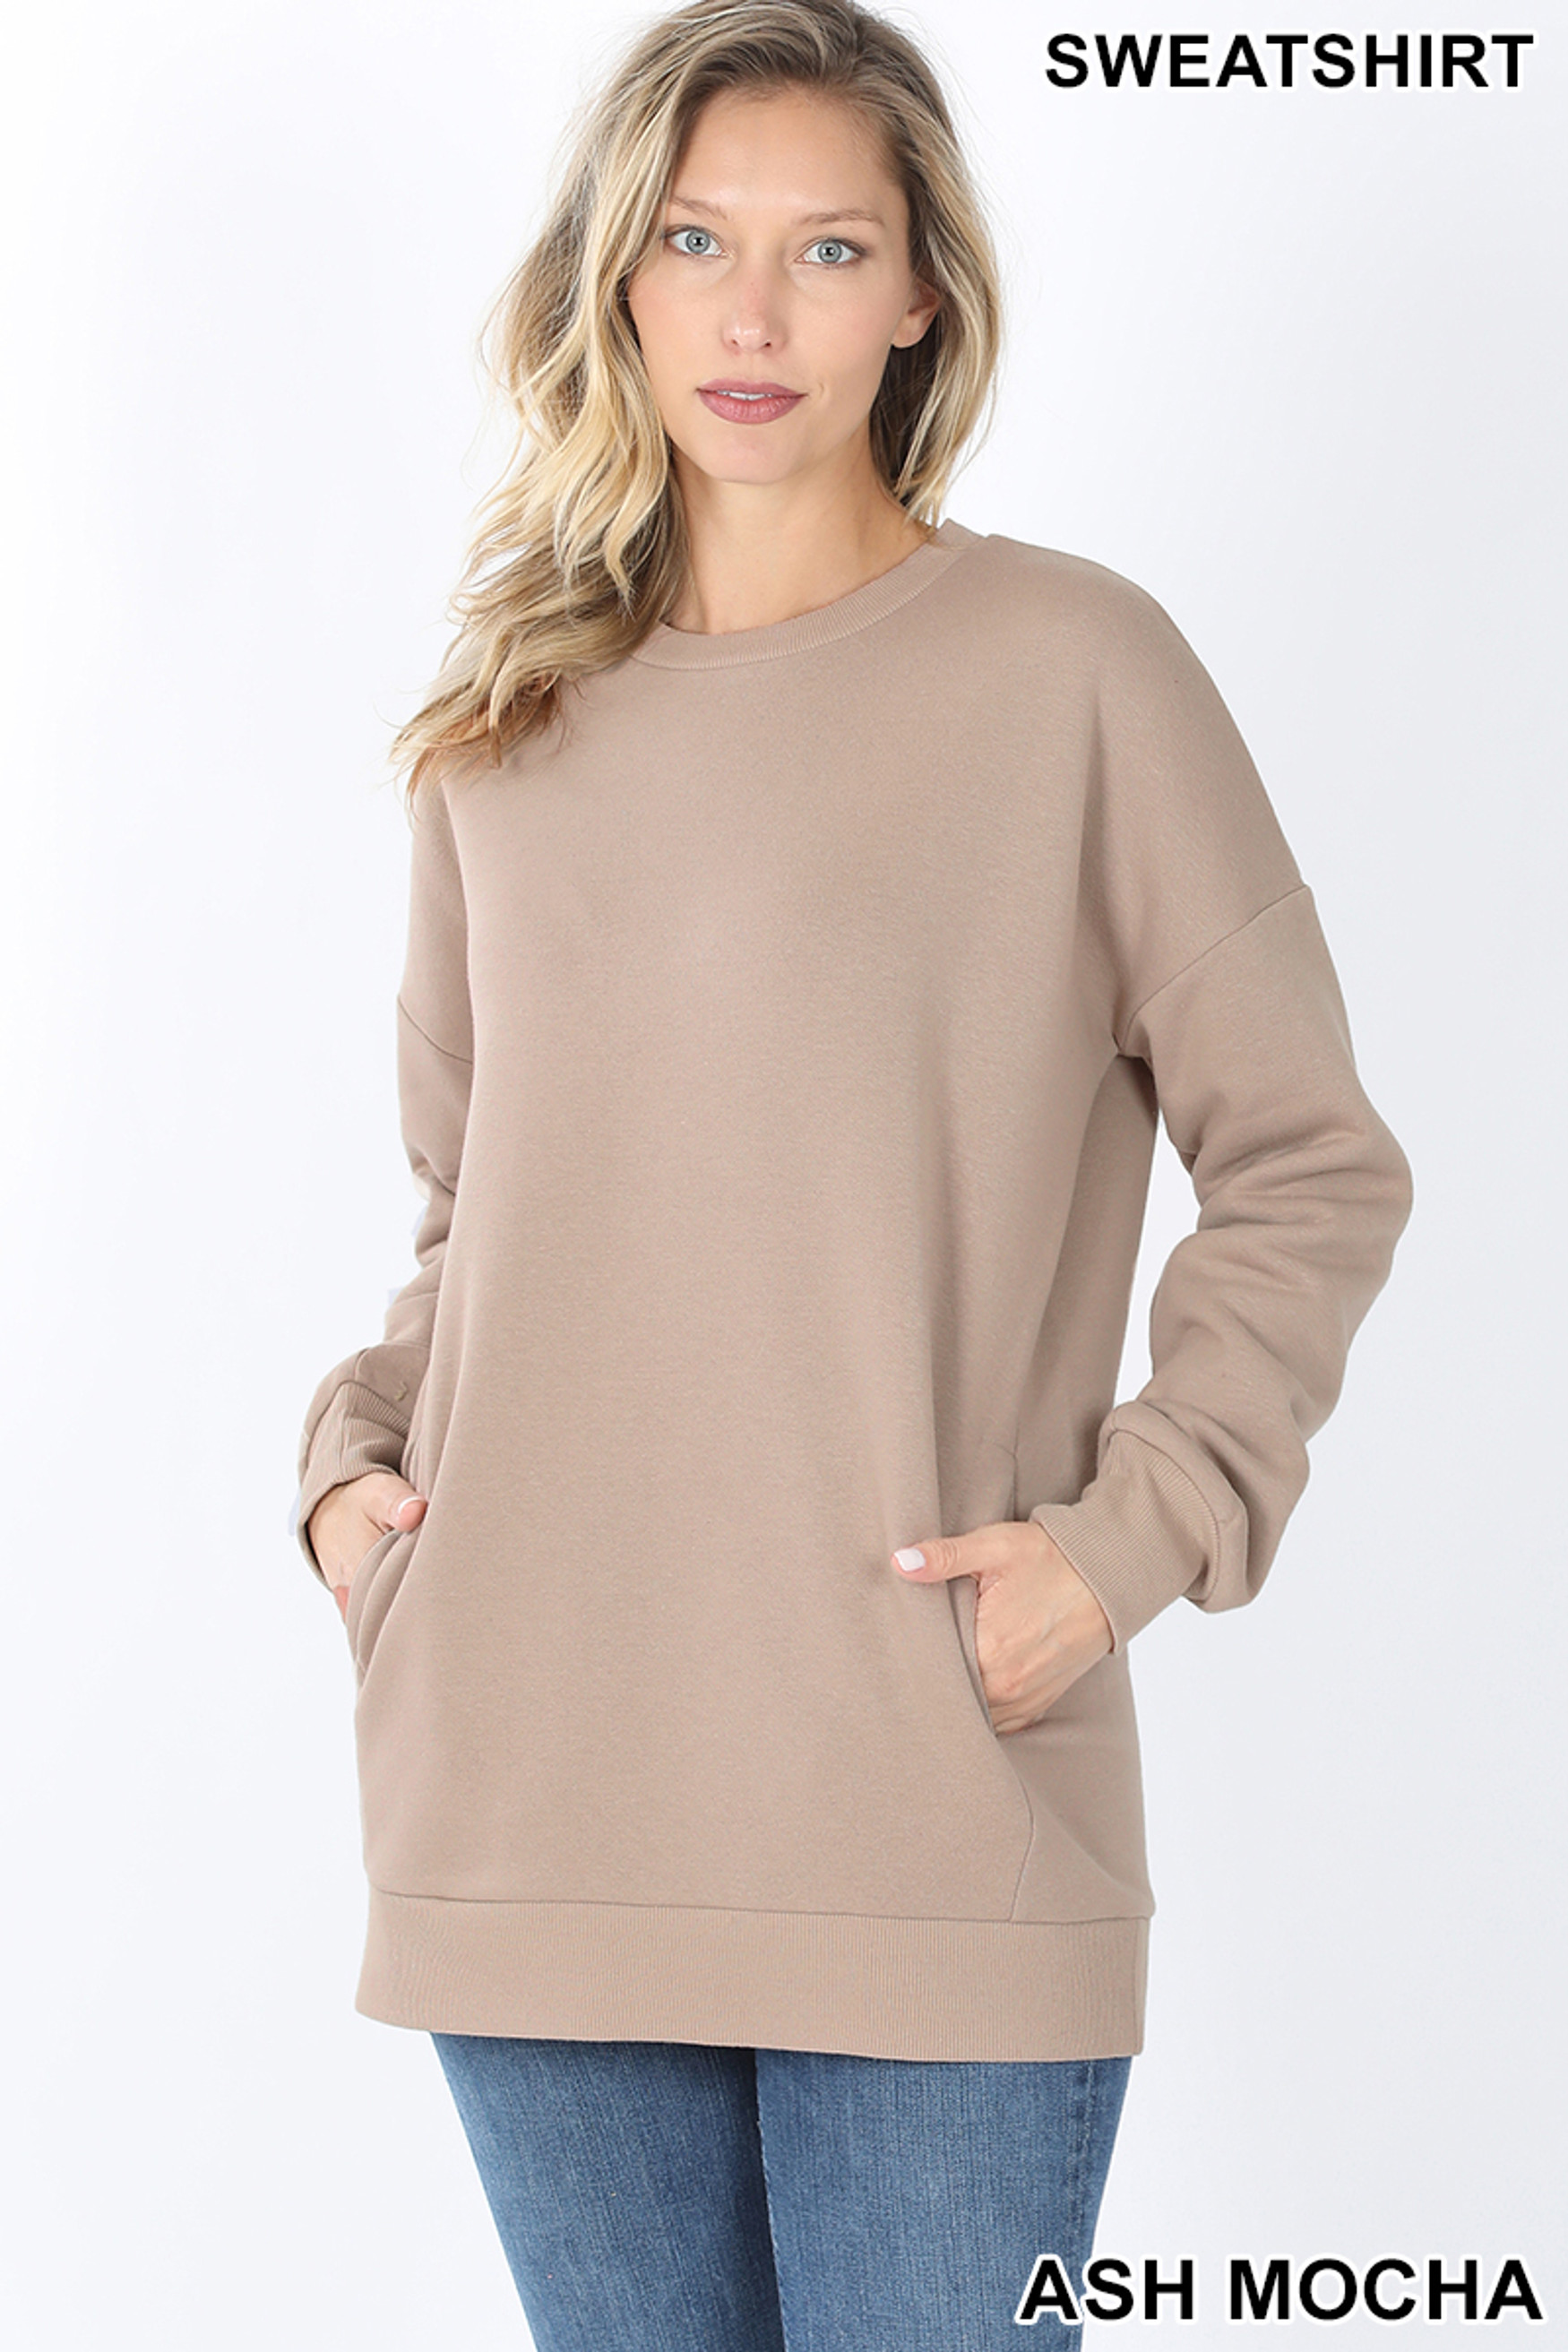 Front image of Ash Mocha Round Crew Neck Sweatshirt with Side Pockets